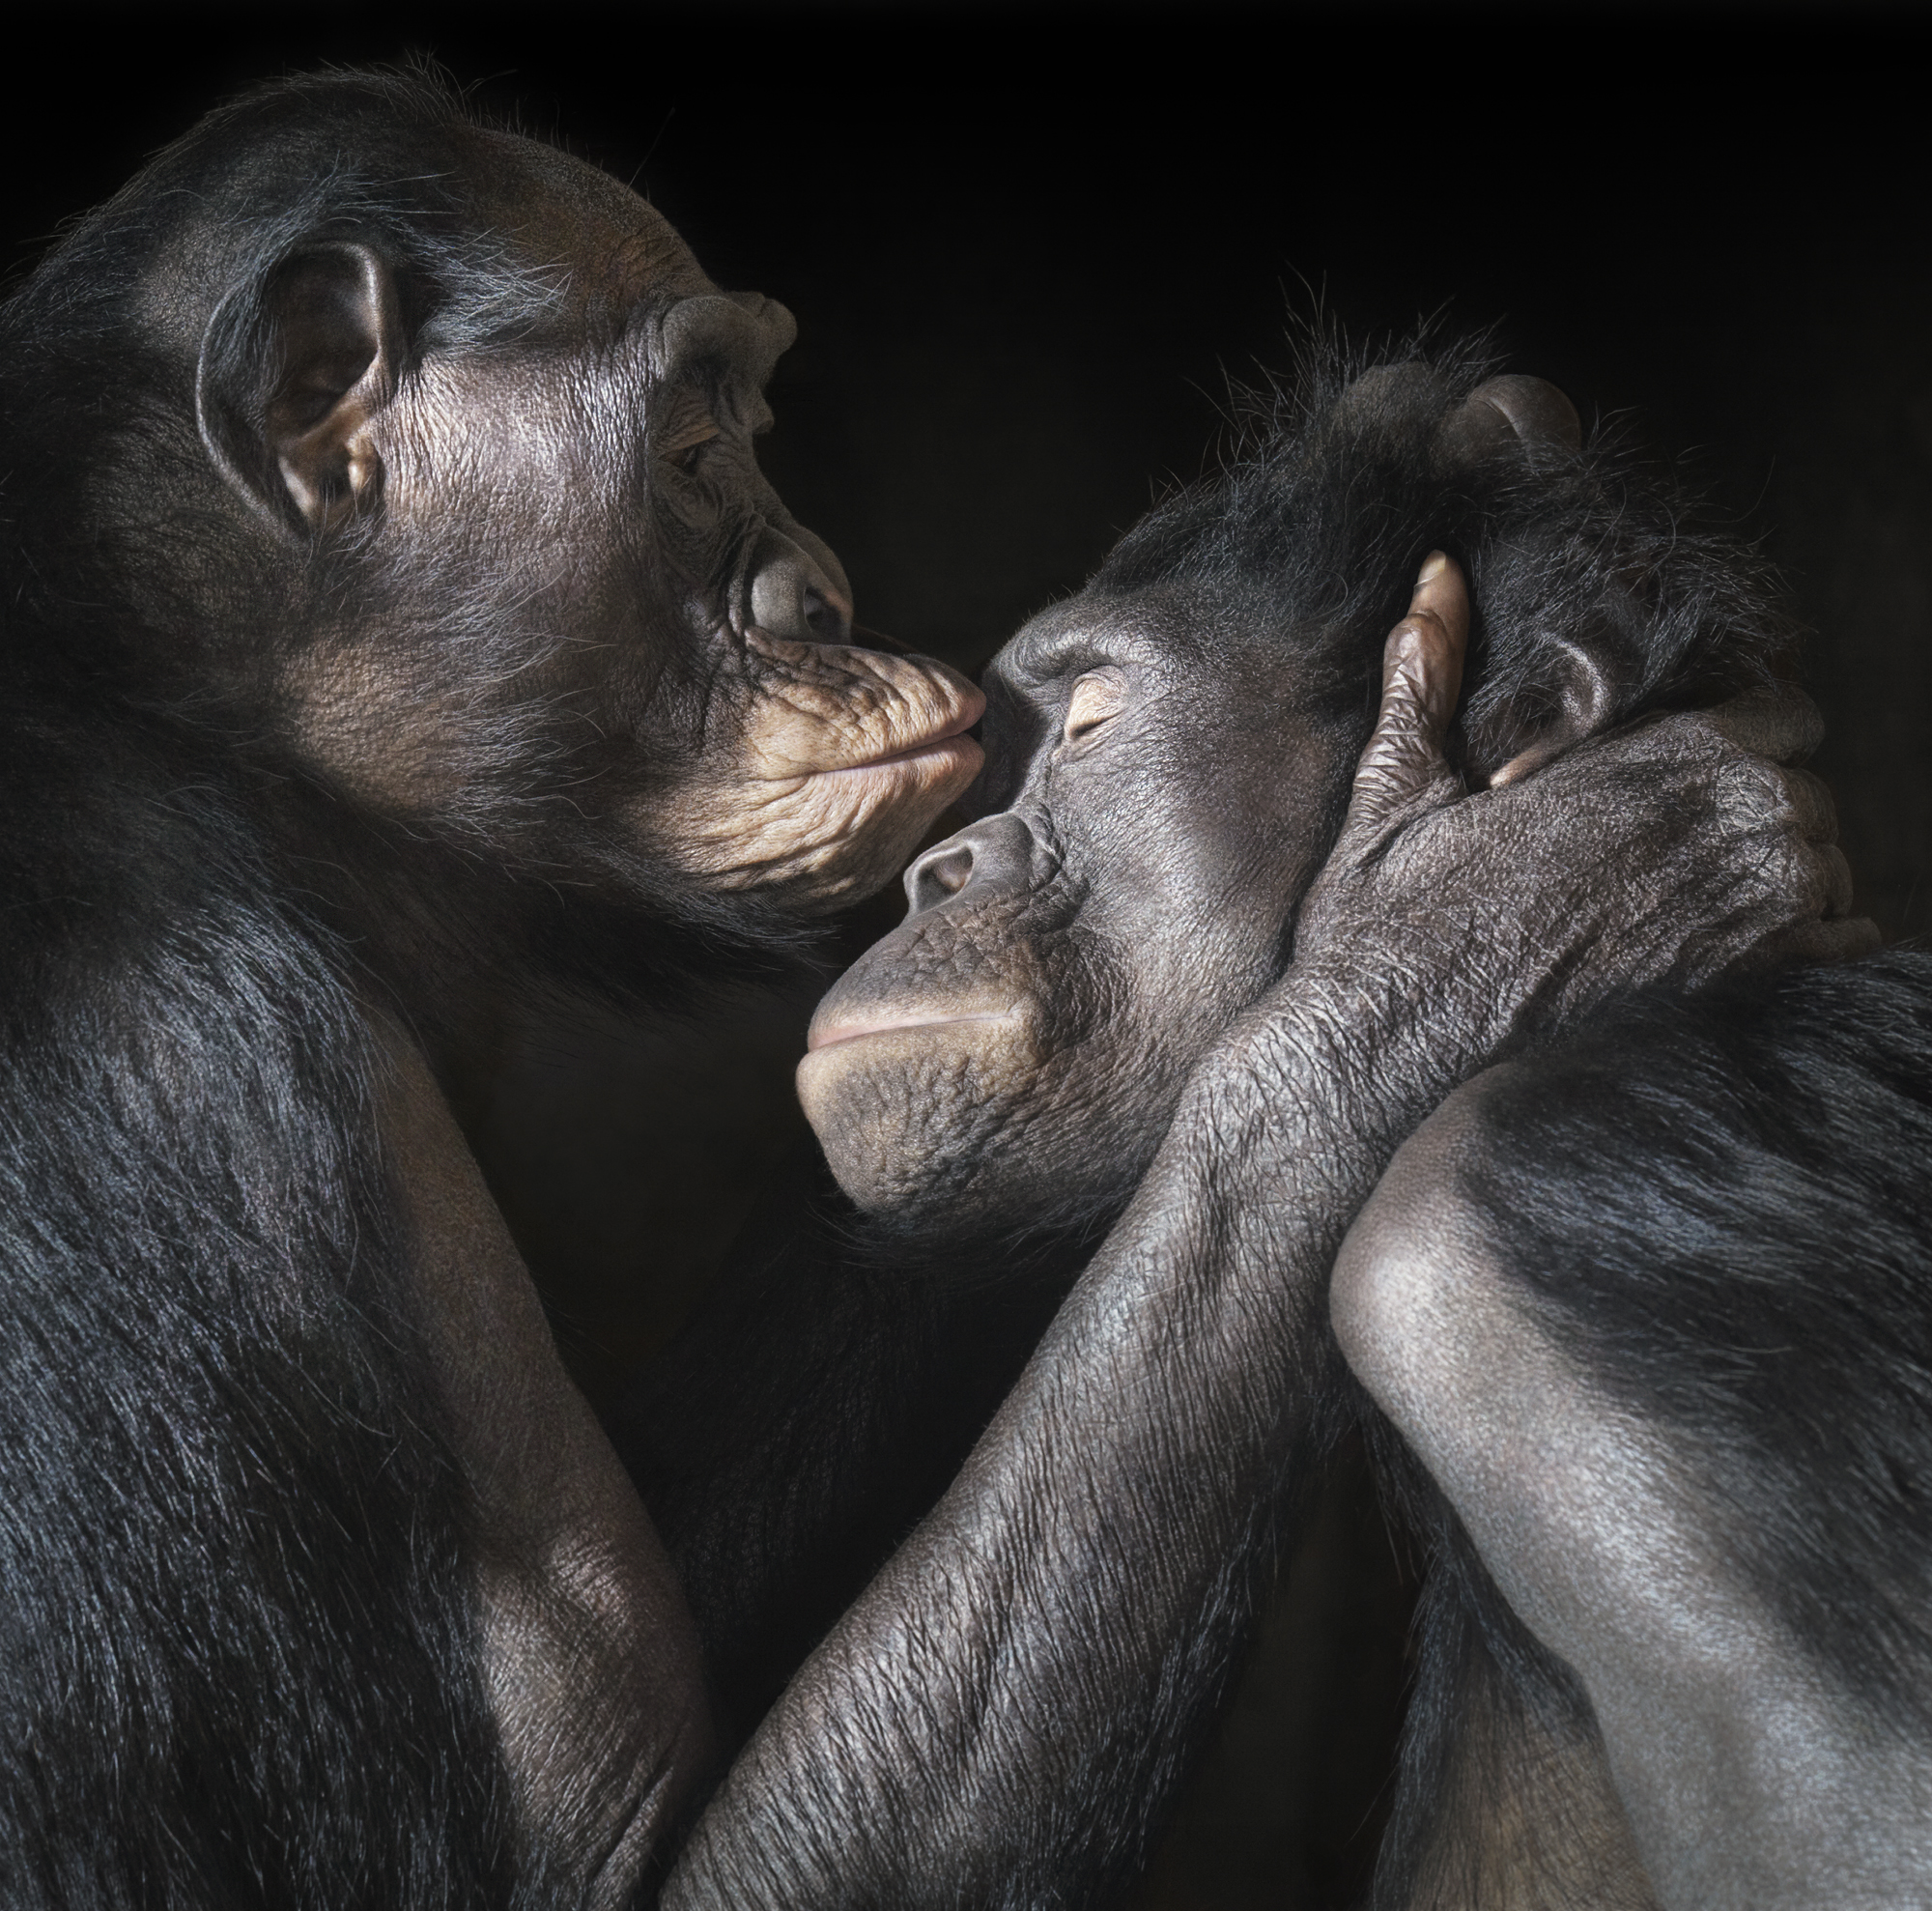 Kissing by Tim Flach